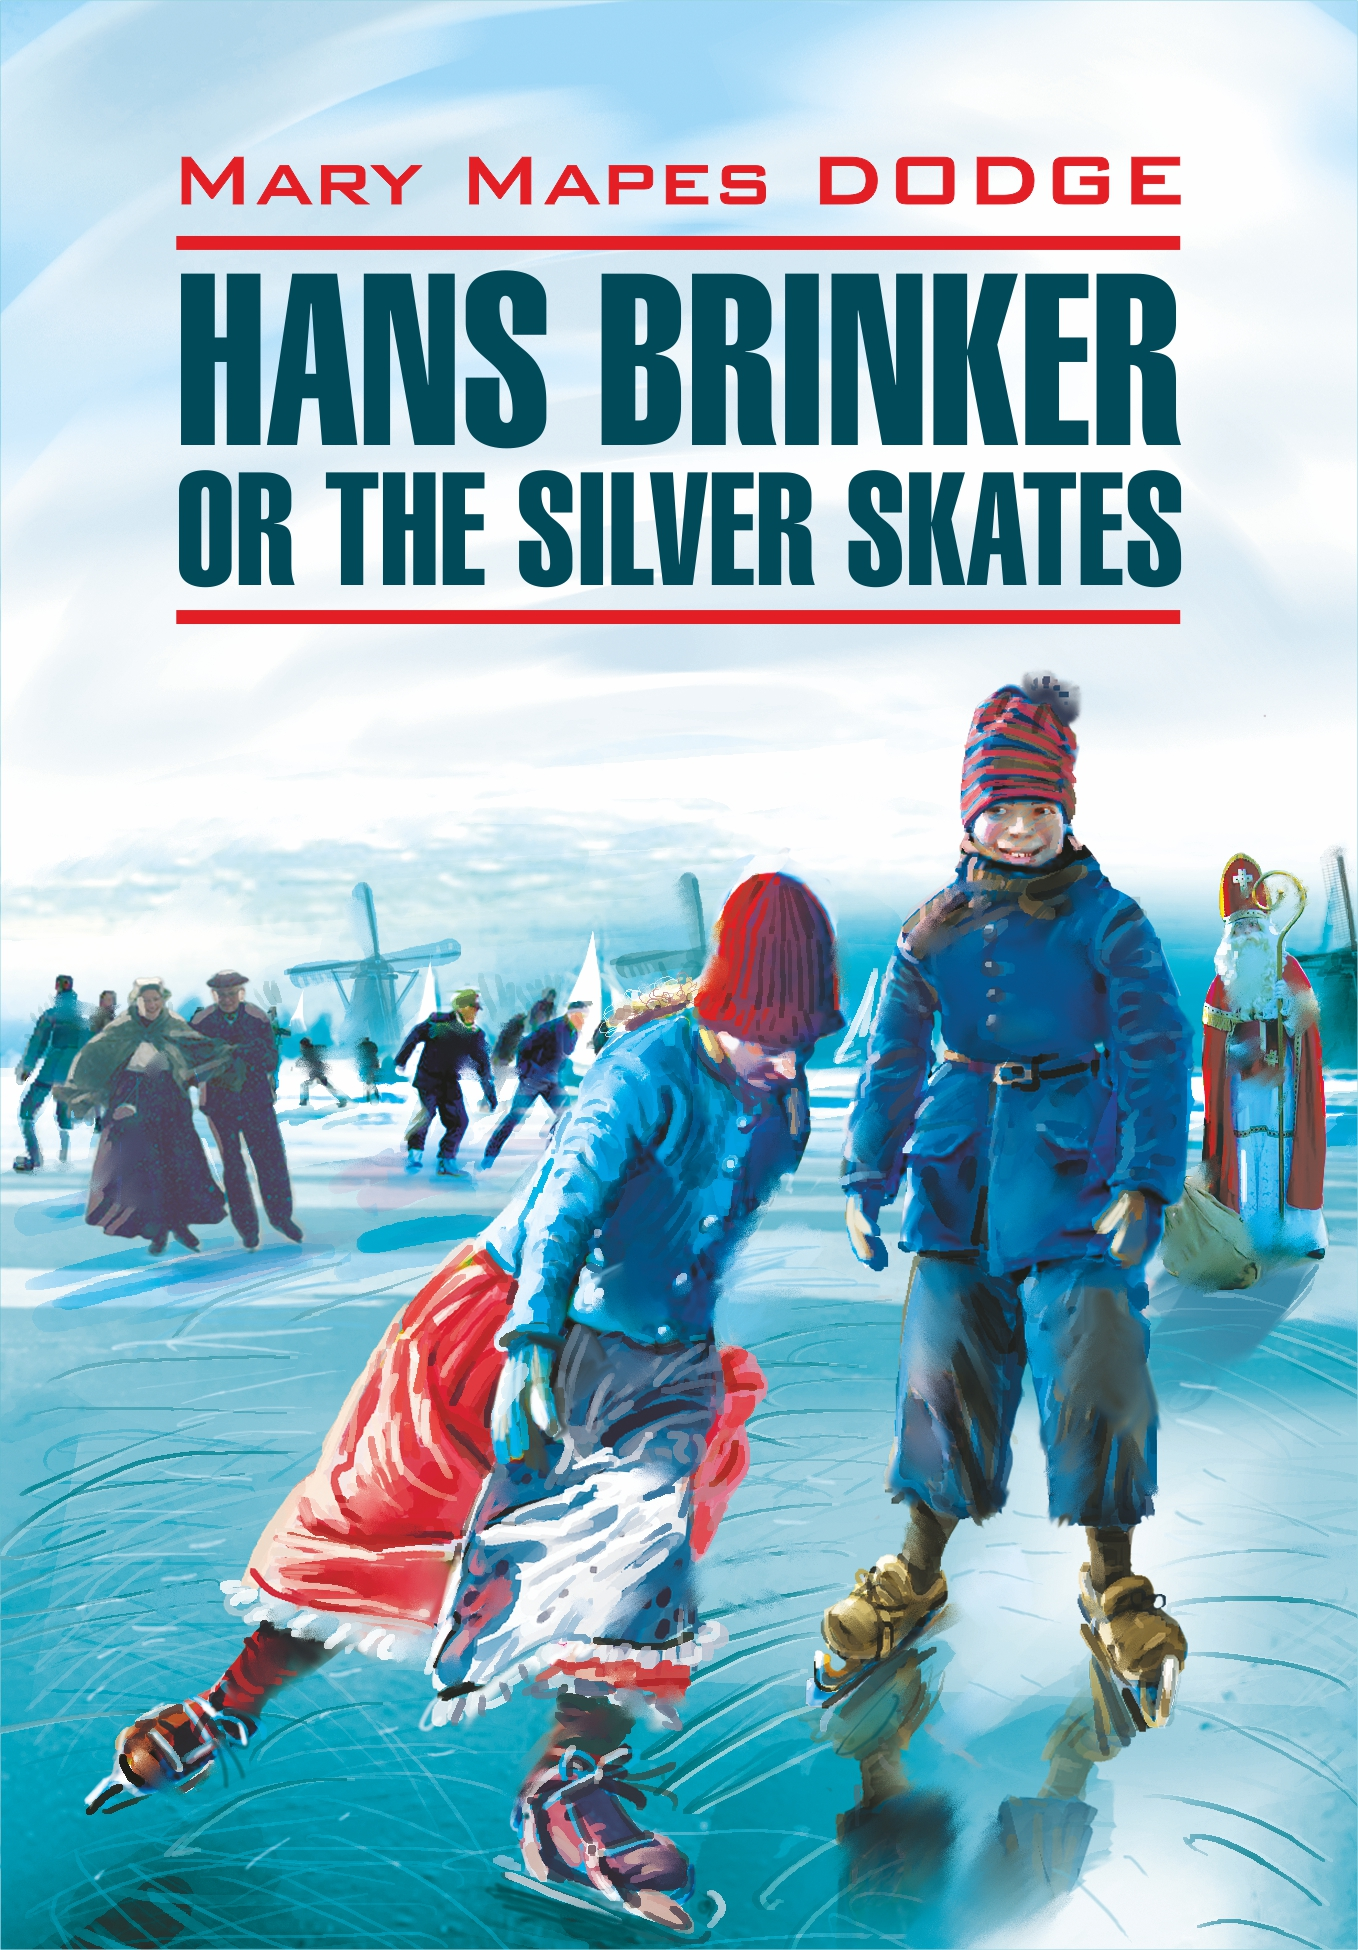 Мэри Мейпс Додж Hans Brinker, or the Silver Skates / Серебряные коньки. Книга для чтения на английском языке professionales road show rx4 roller skates four wheel skates inline skates ice hockey skates for adulto